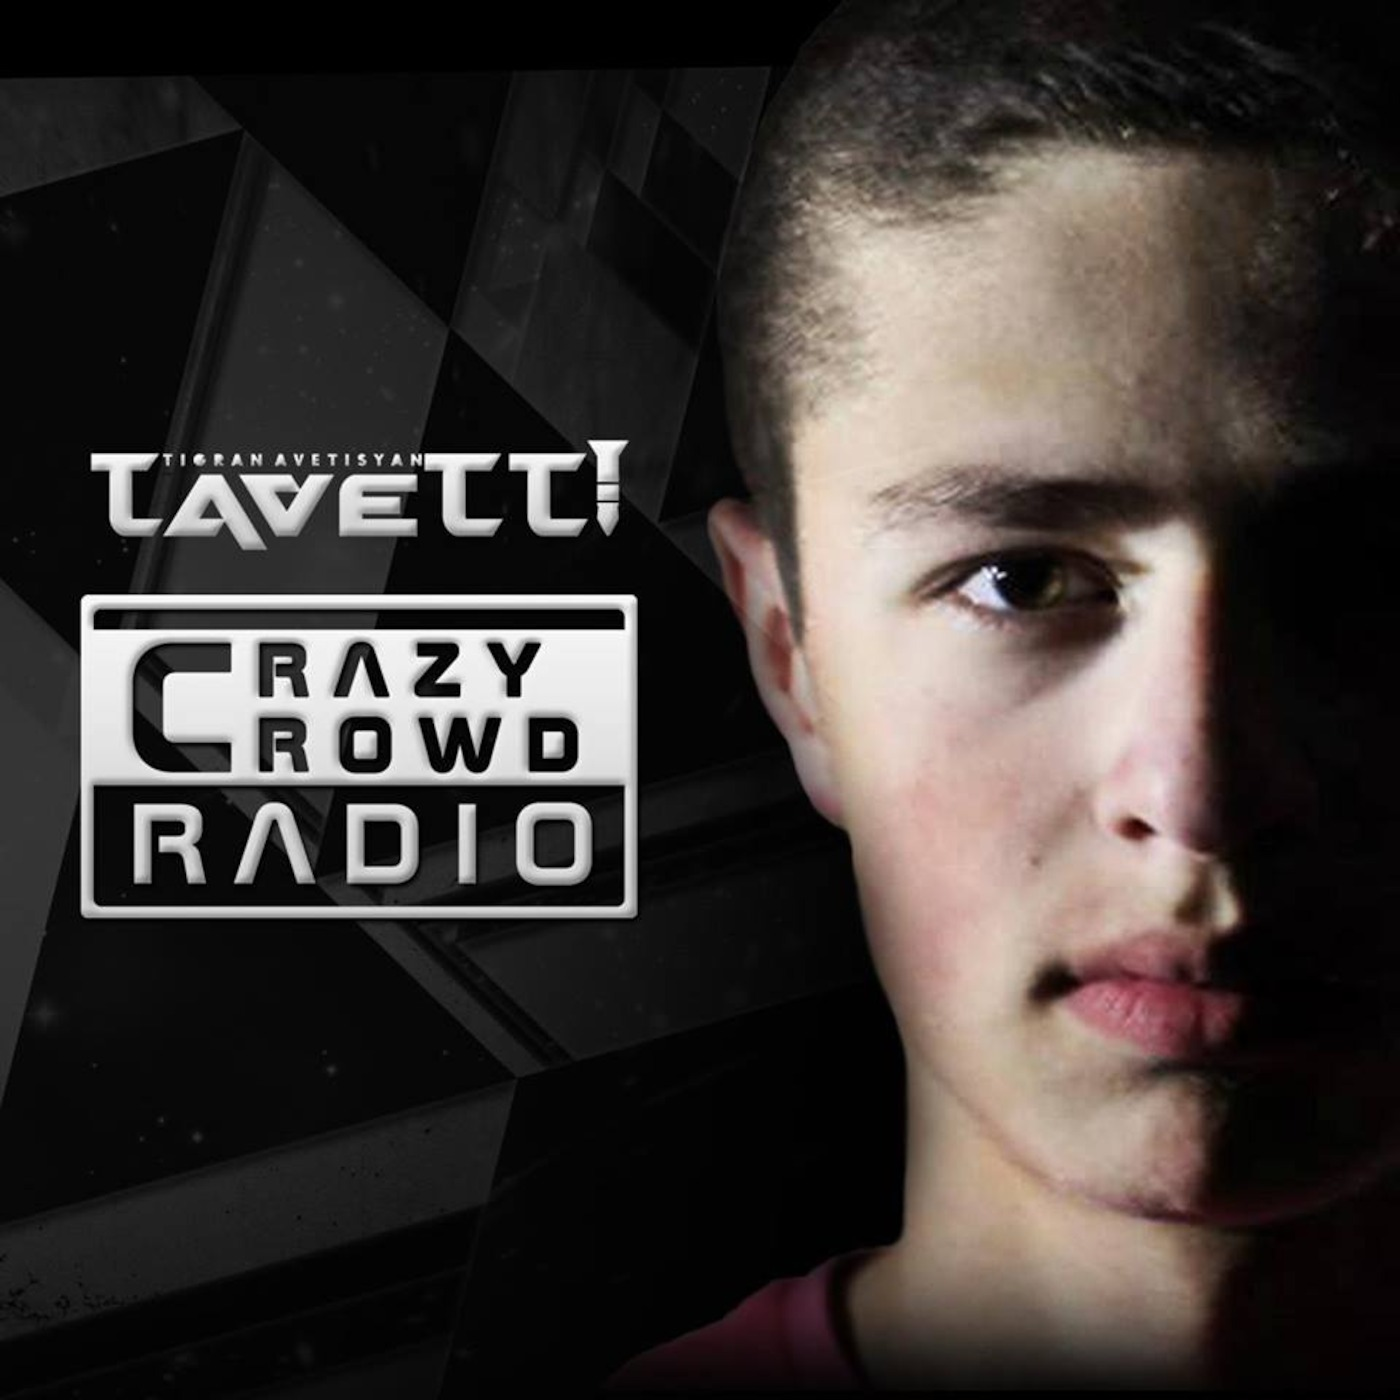 Crazy Crowd Radio by Tavetti